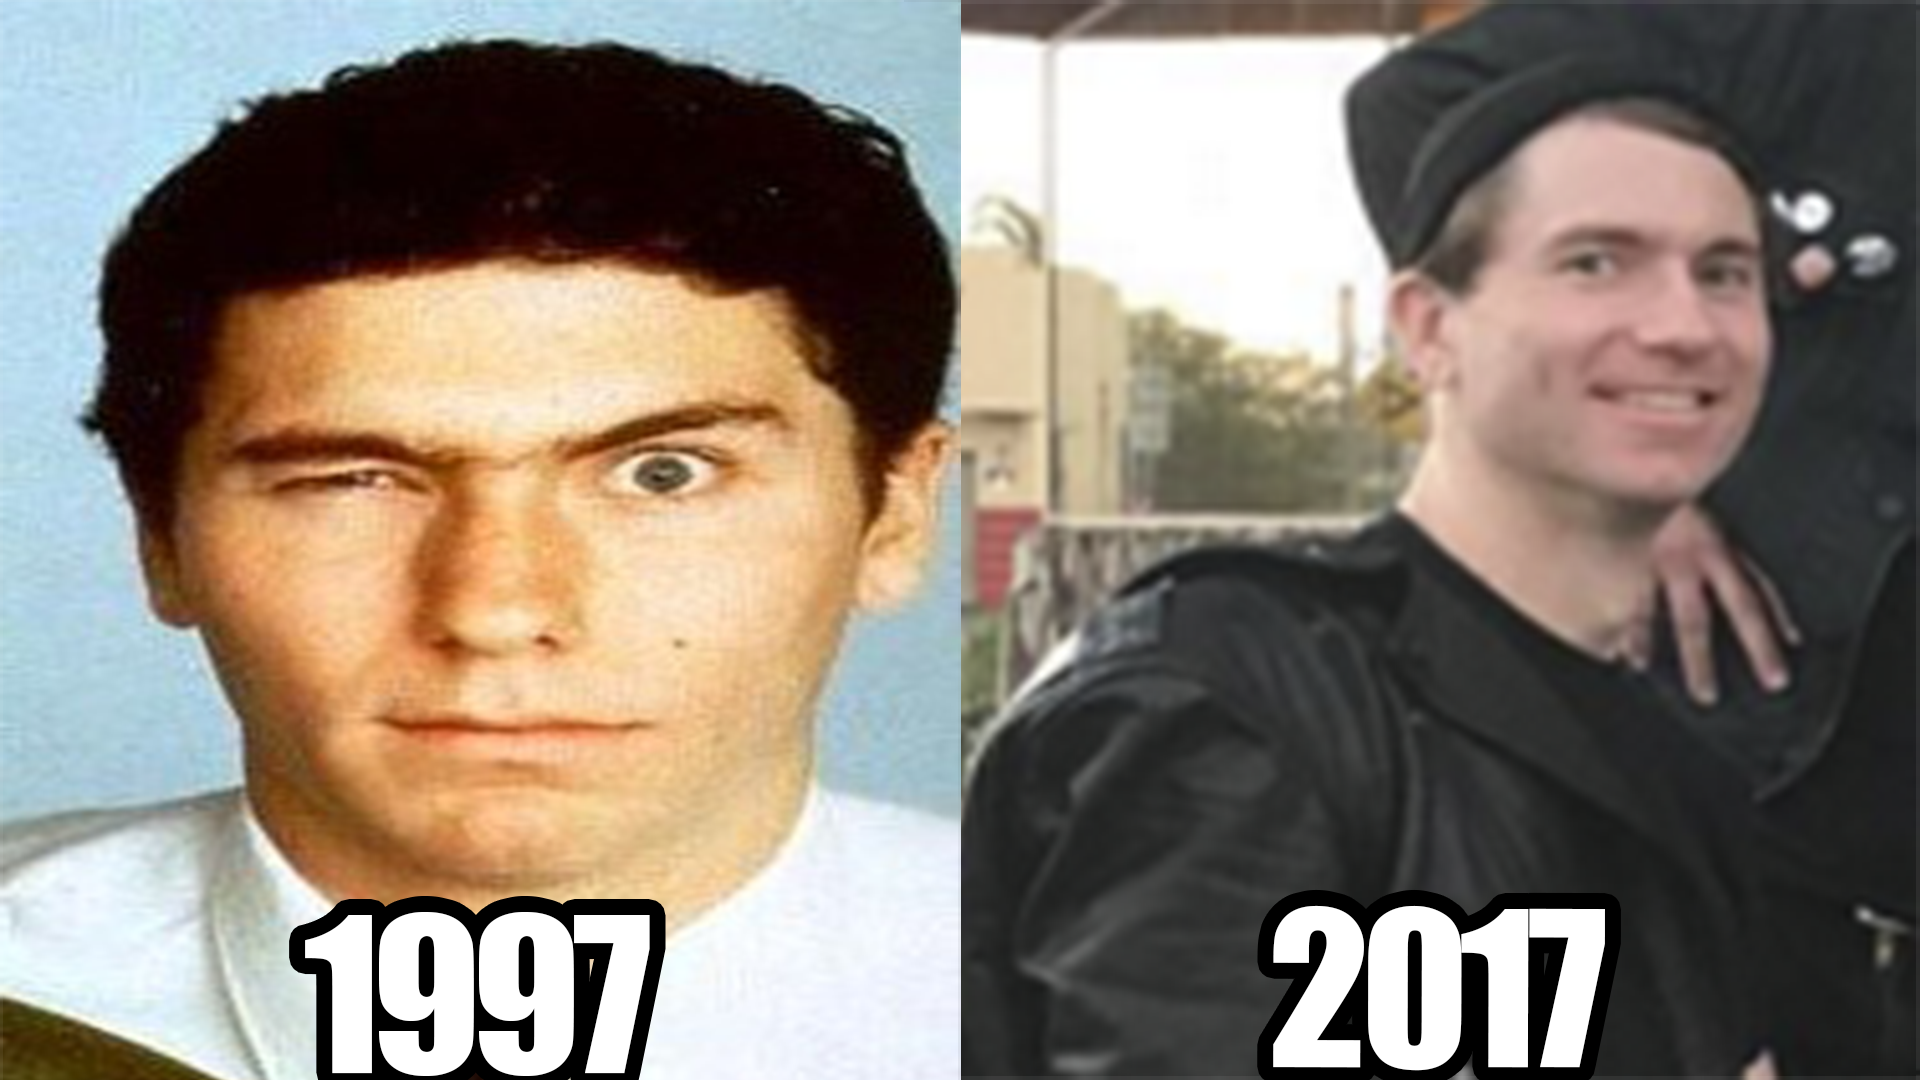 Scott Raynor Png - OMG! Scott Raynor changed a lot in 20 years : Blink182